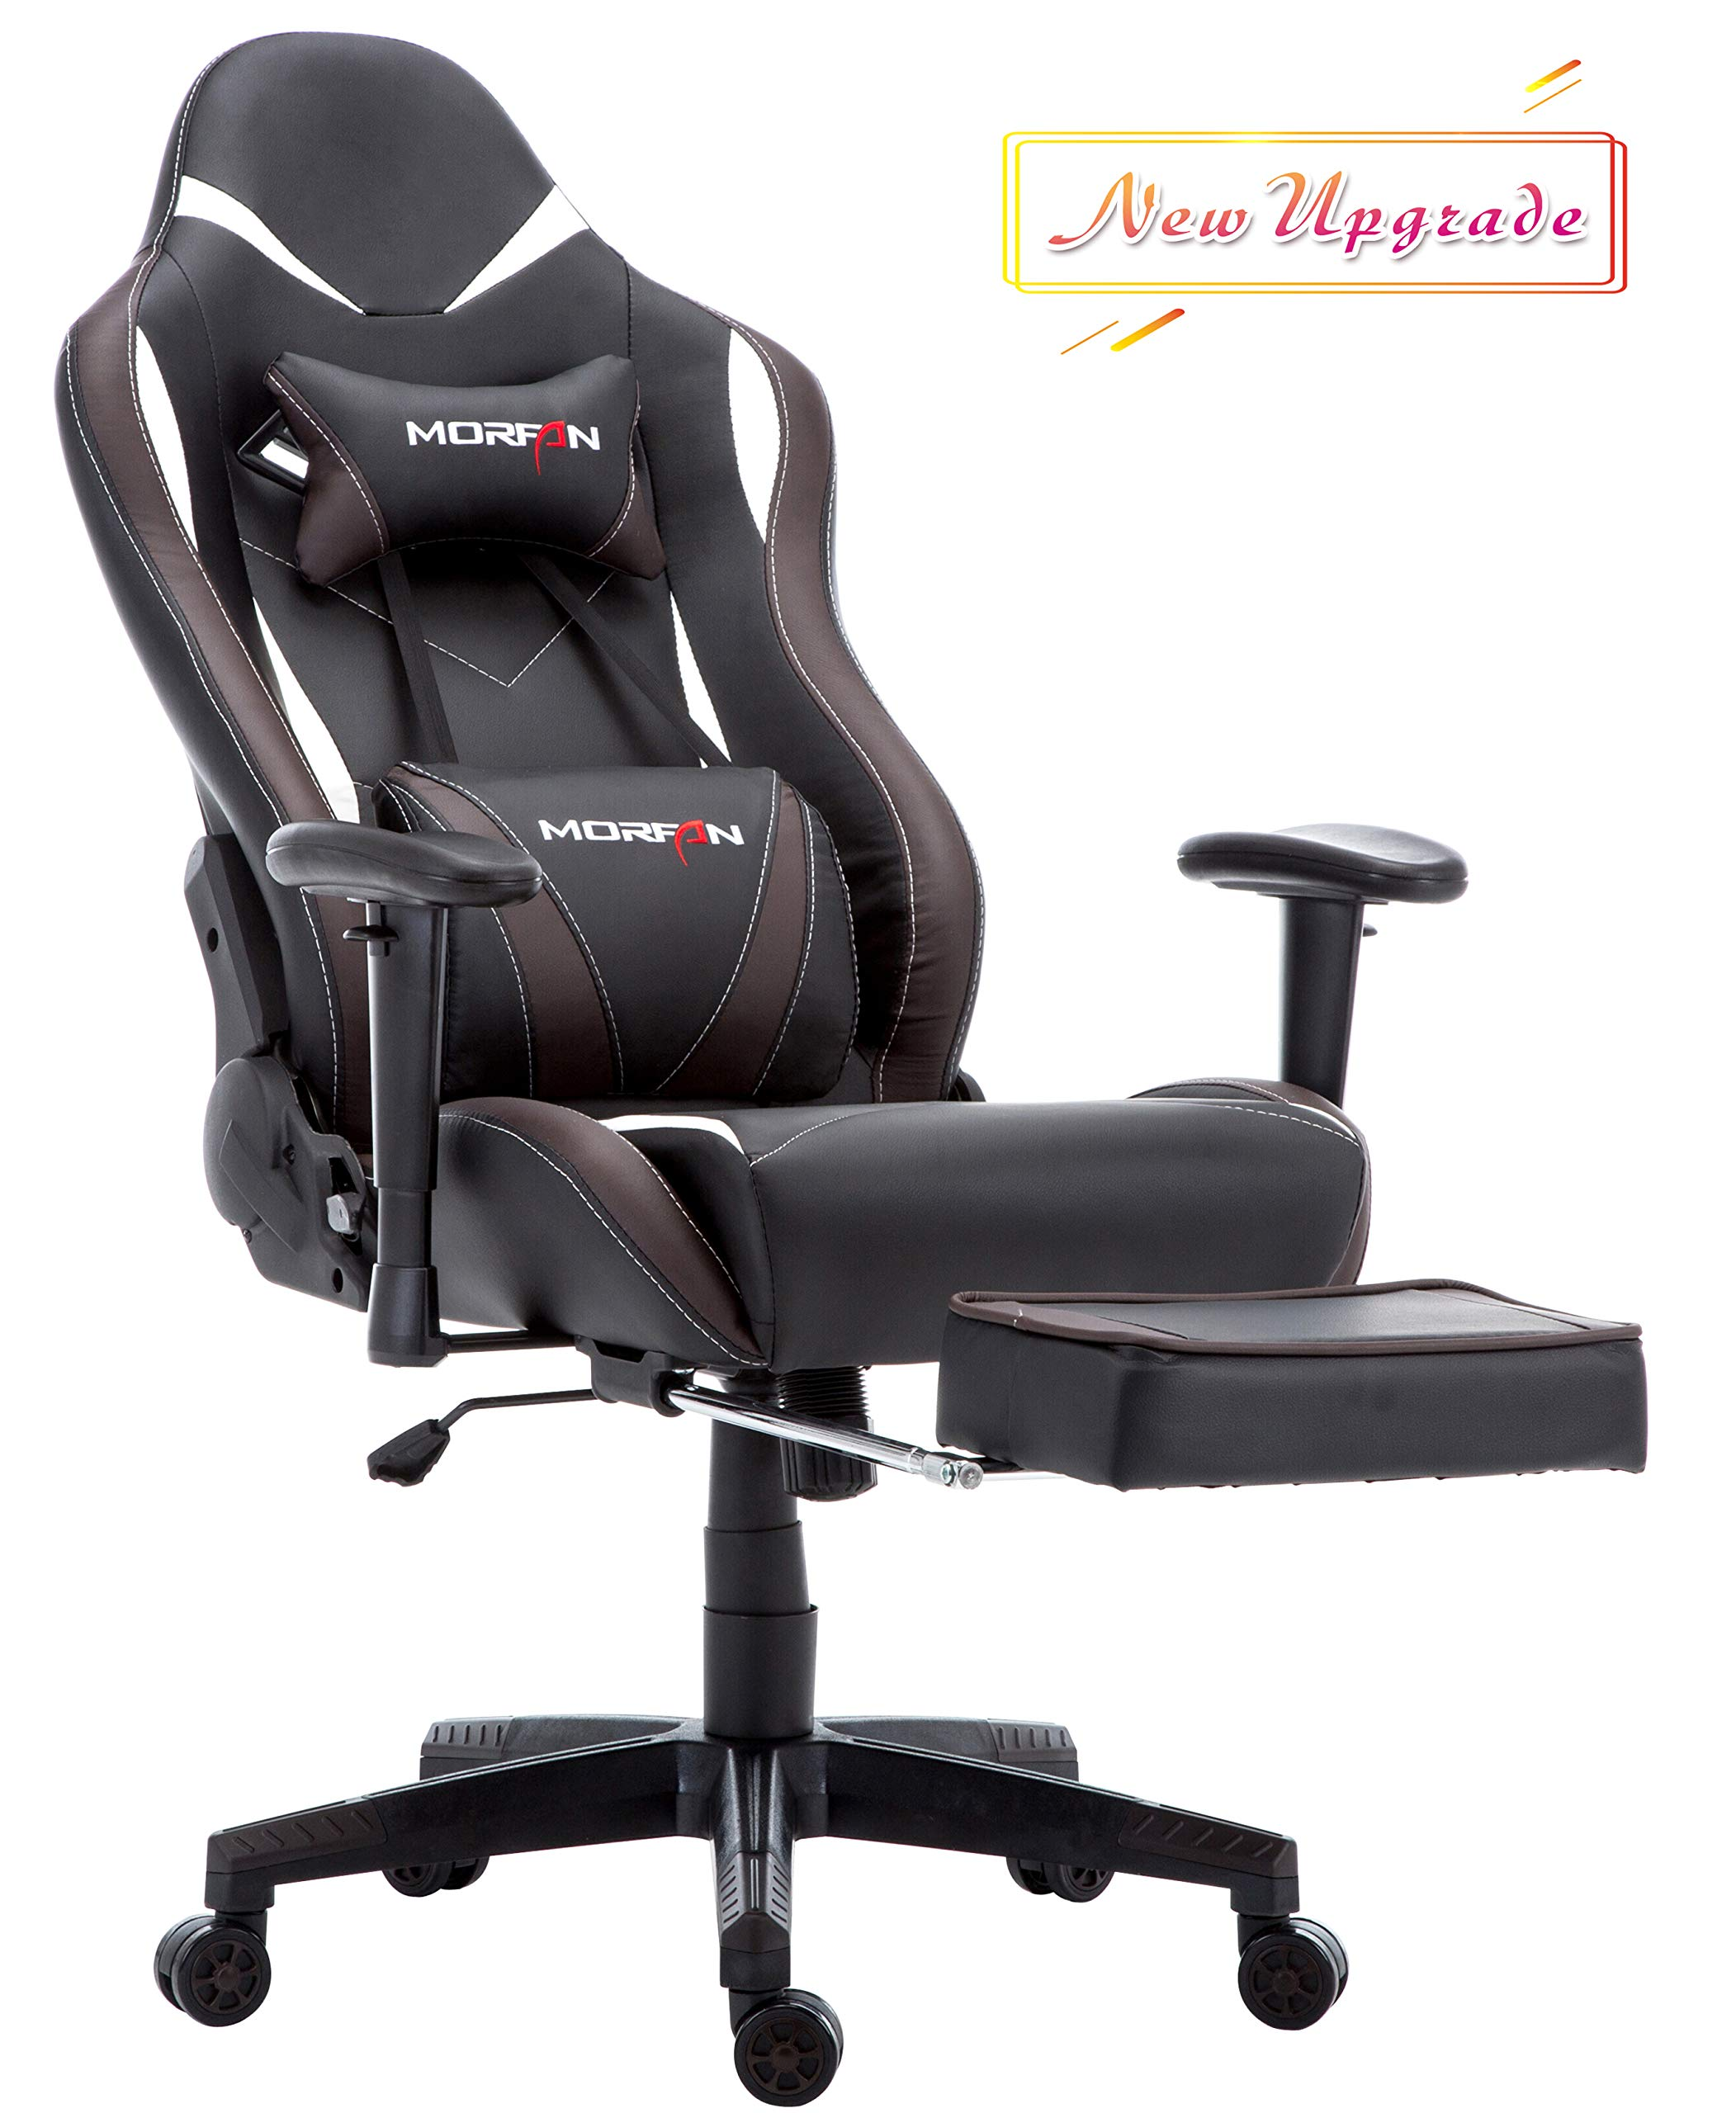 Morfan Gaming Chair Large Size Massage Function Ergonomic Racing Style PC Computer Office Chair with Retractable Footrest & Adjustable Lumbar and Headrest Pillows (Black/Brown) by MORFAN (Image #1)